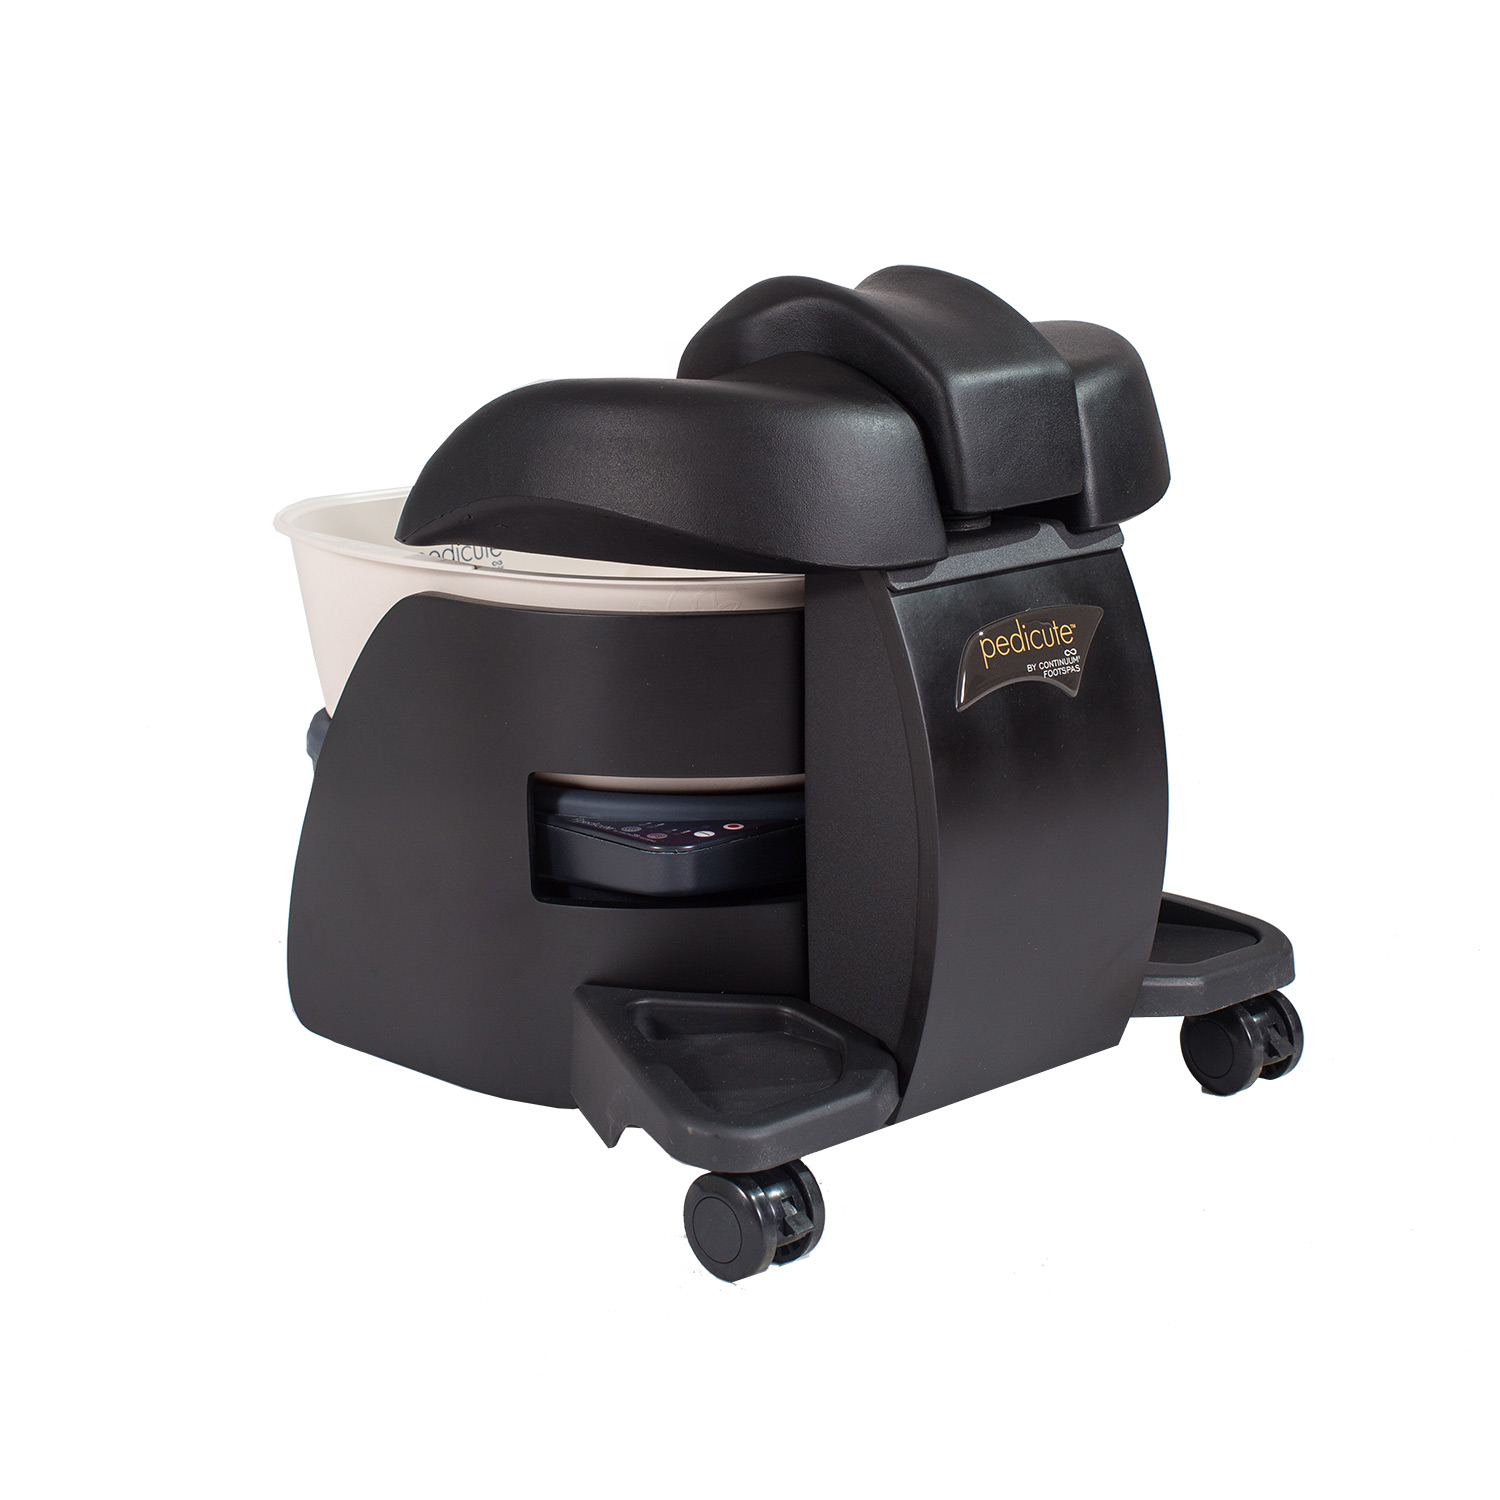 Awesome Continuum Pedicute Portable Foot Spa With Foot Rest Caraccident5 Cool Chair Designs And Ideas Caraccident5Info